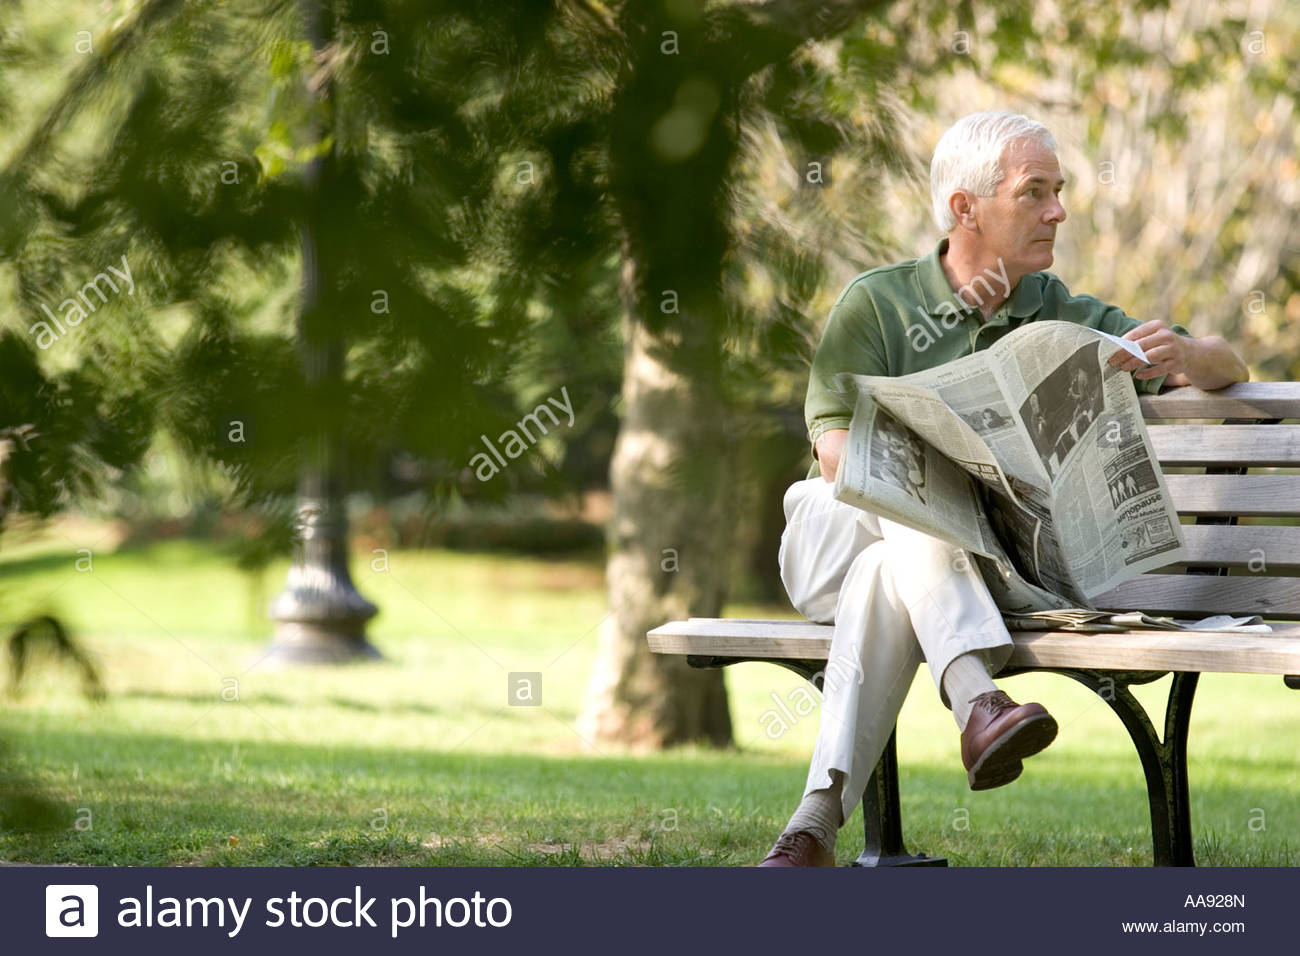 senior man reading newspaper on park bench stock photo: 12554180 - alamy